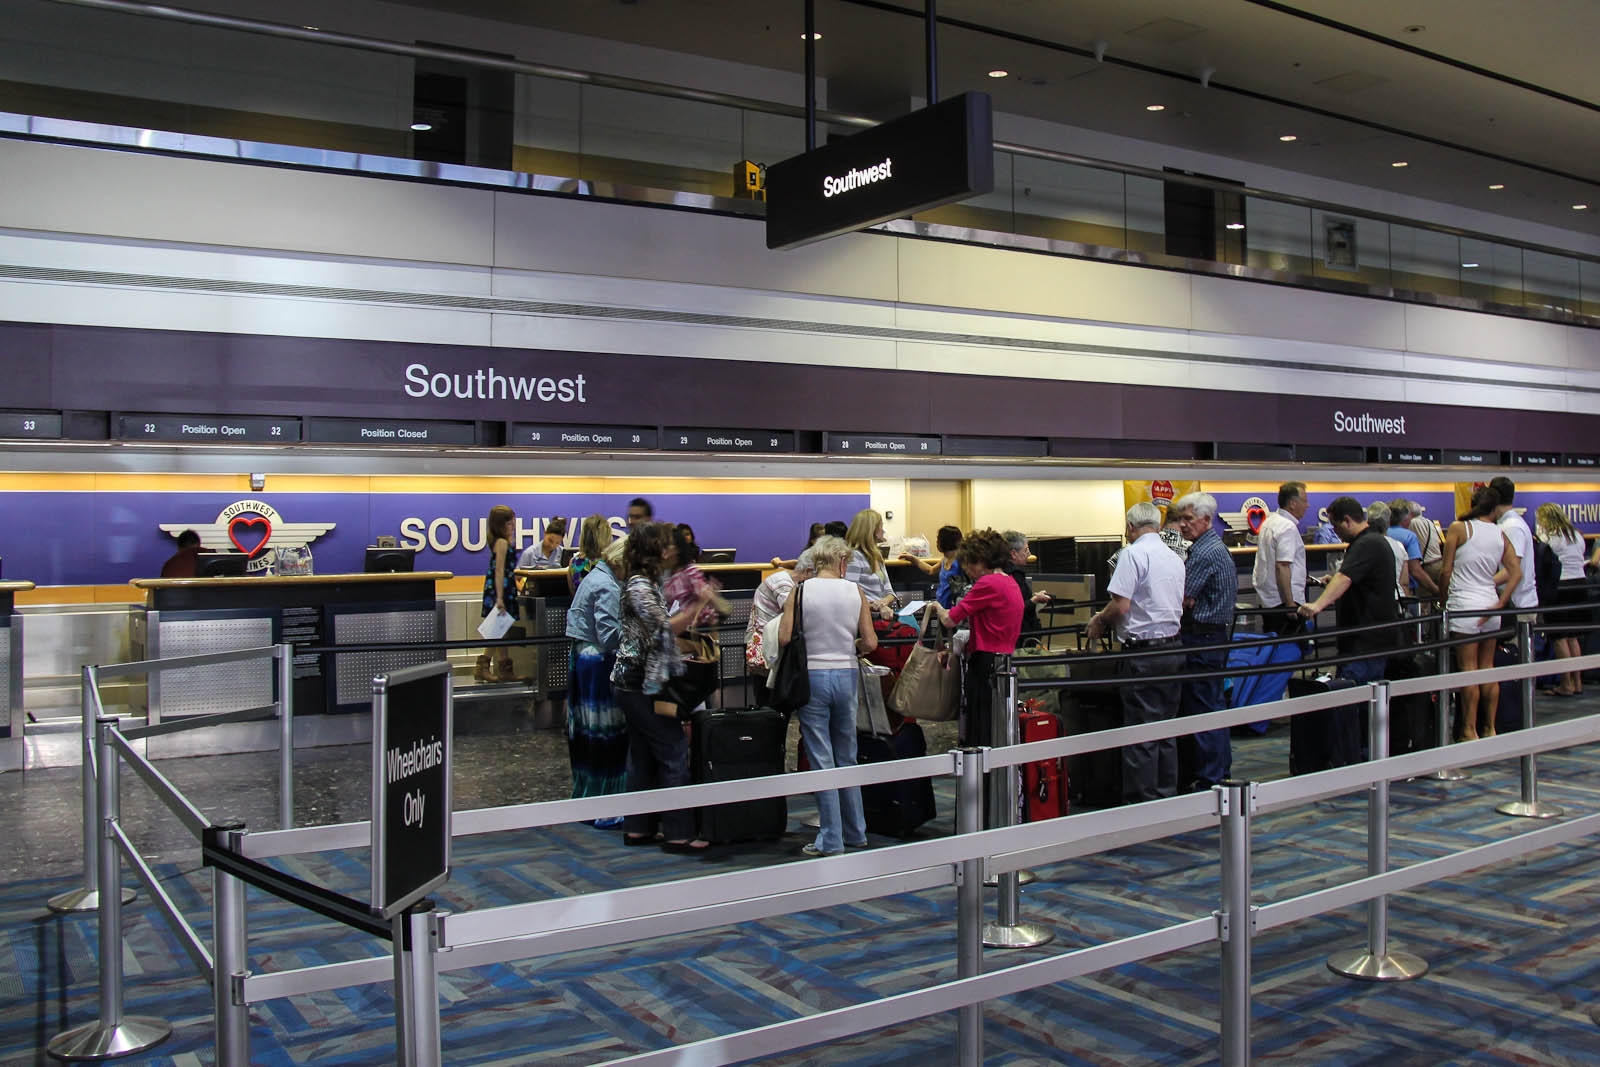 Southwest check-in desks at Las Vegas airport